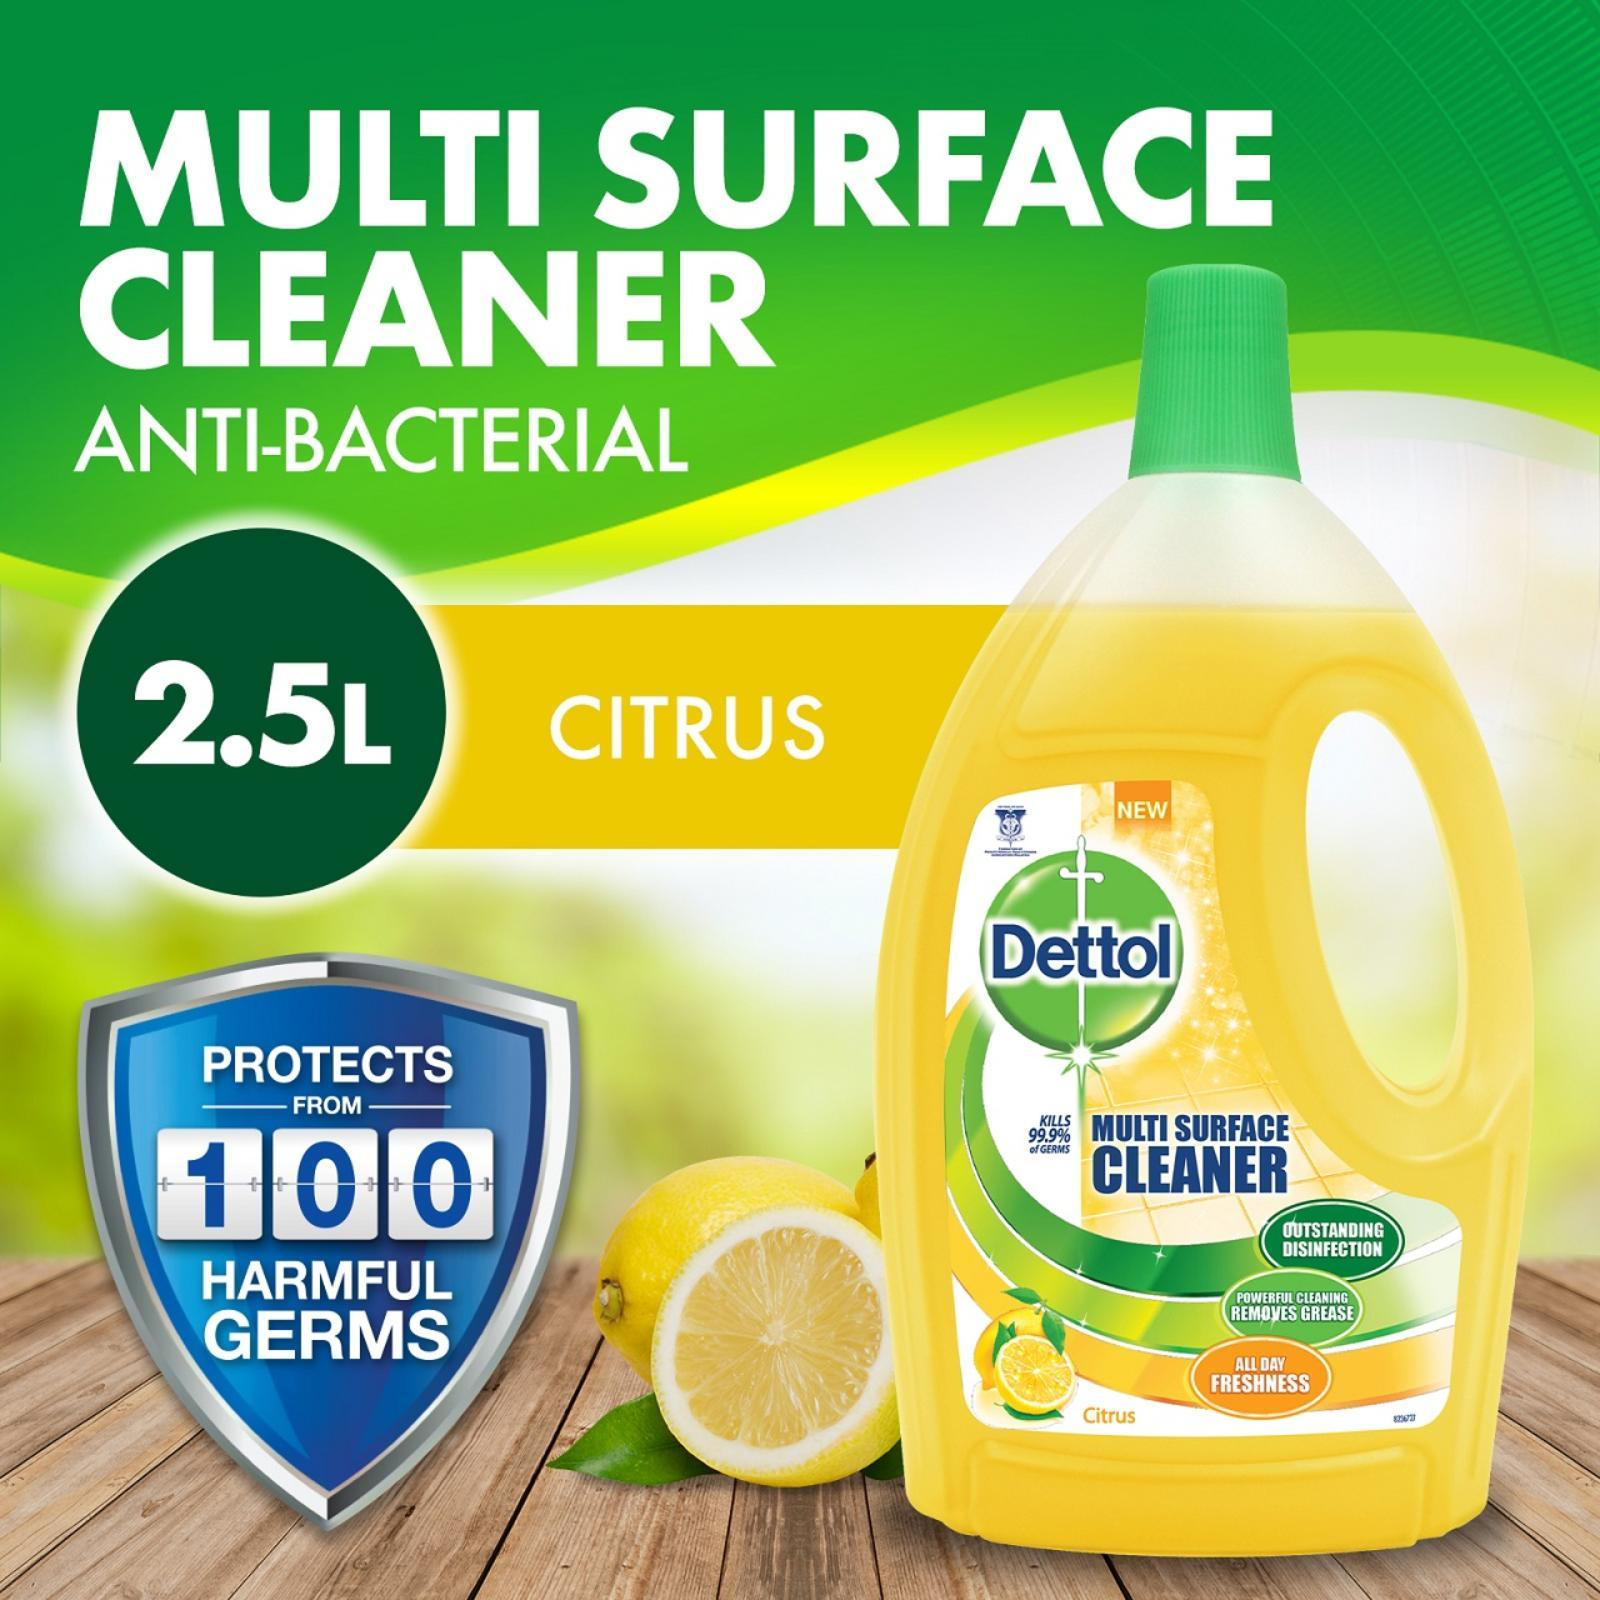 Dettol 4-in-1 Disinfectant Multi Surface Cleaner Citrus 2.5L